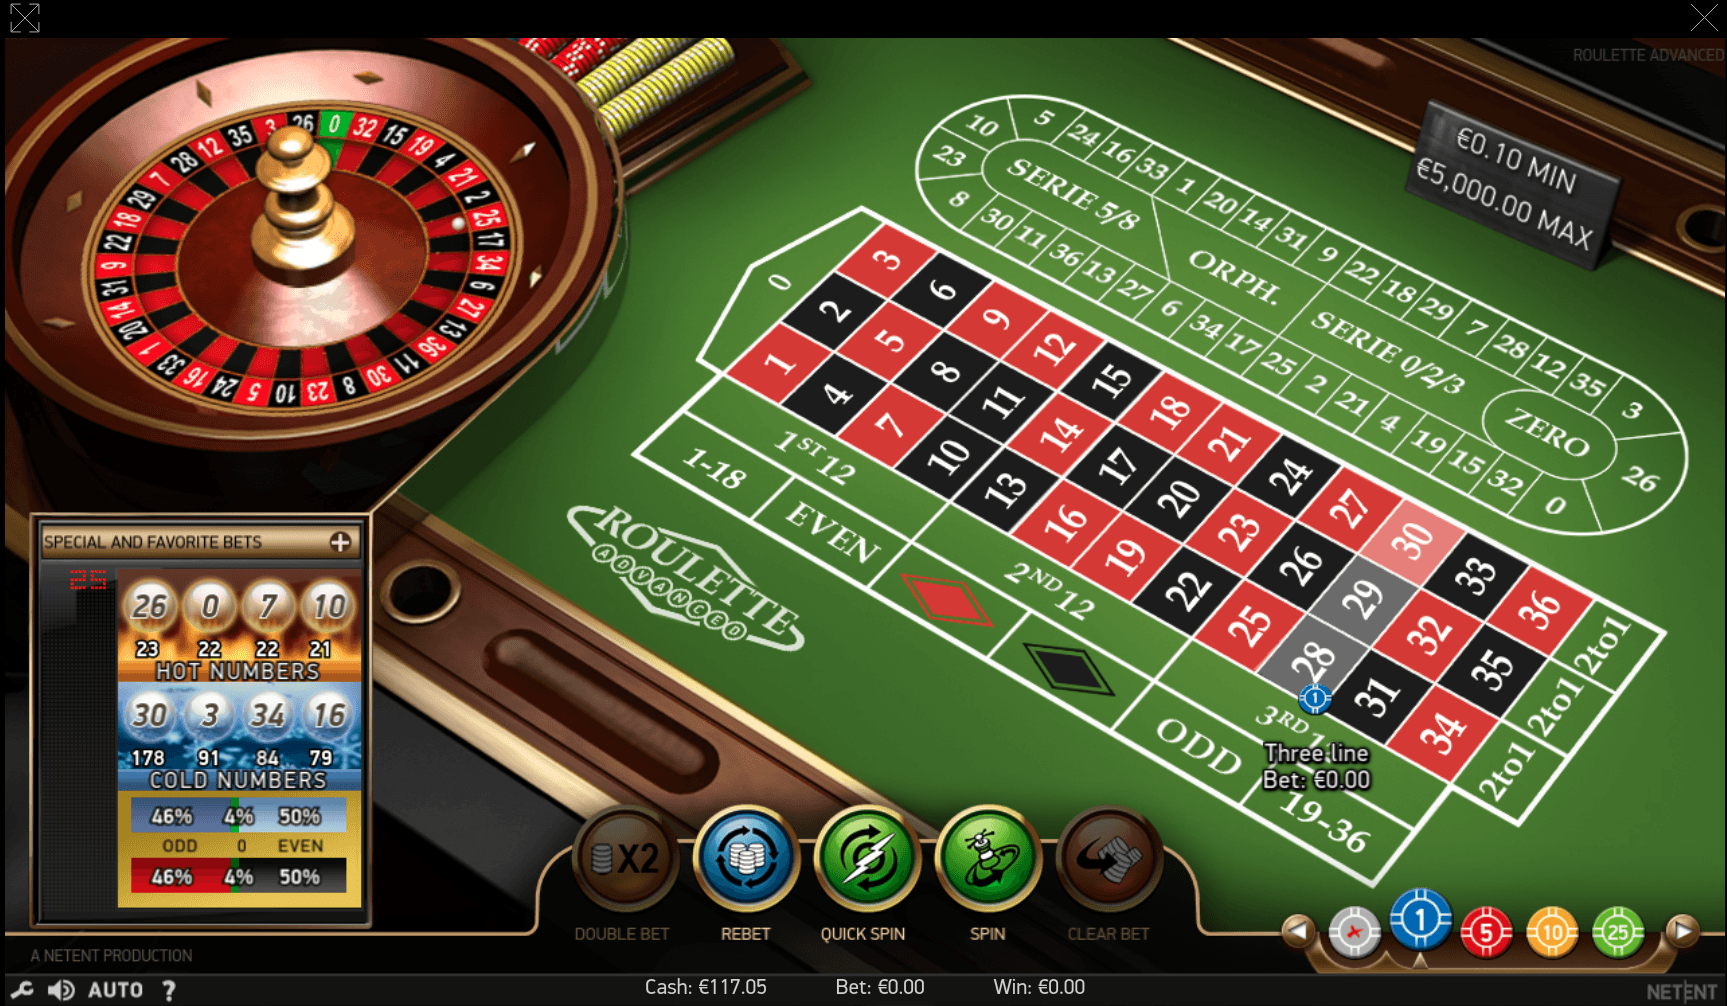 Roulette Advanced NetEnt